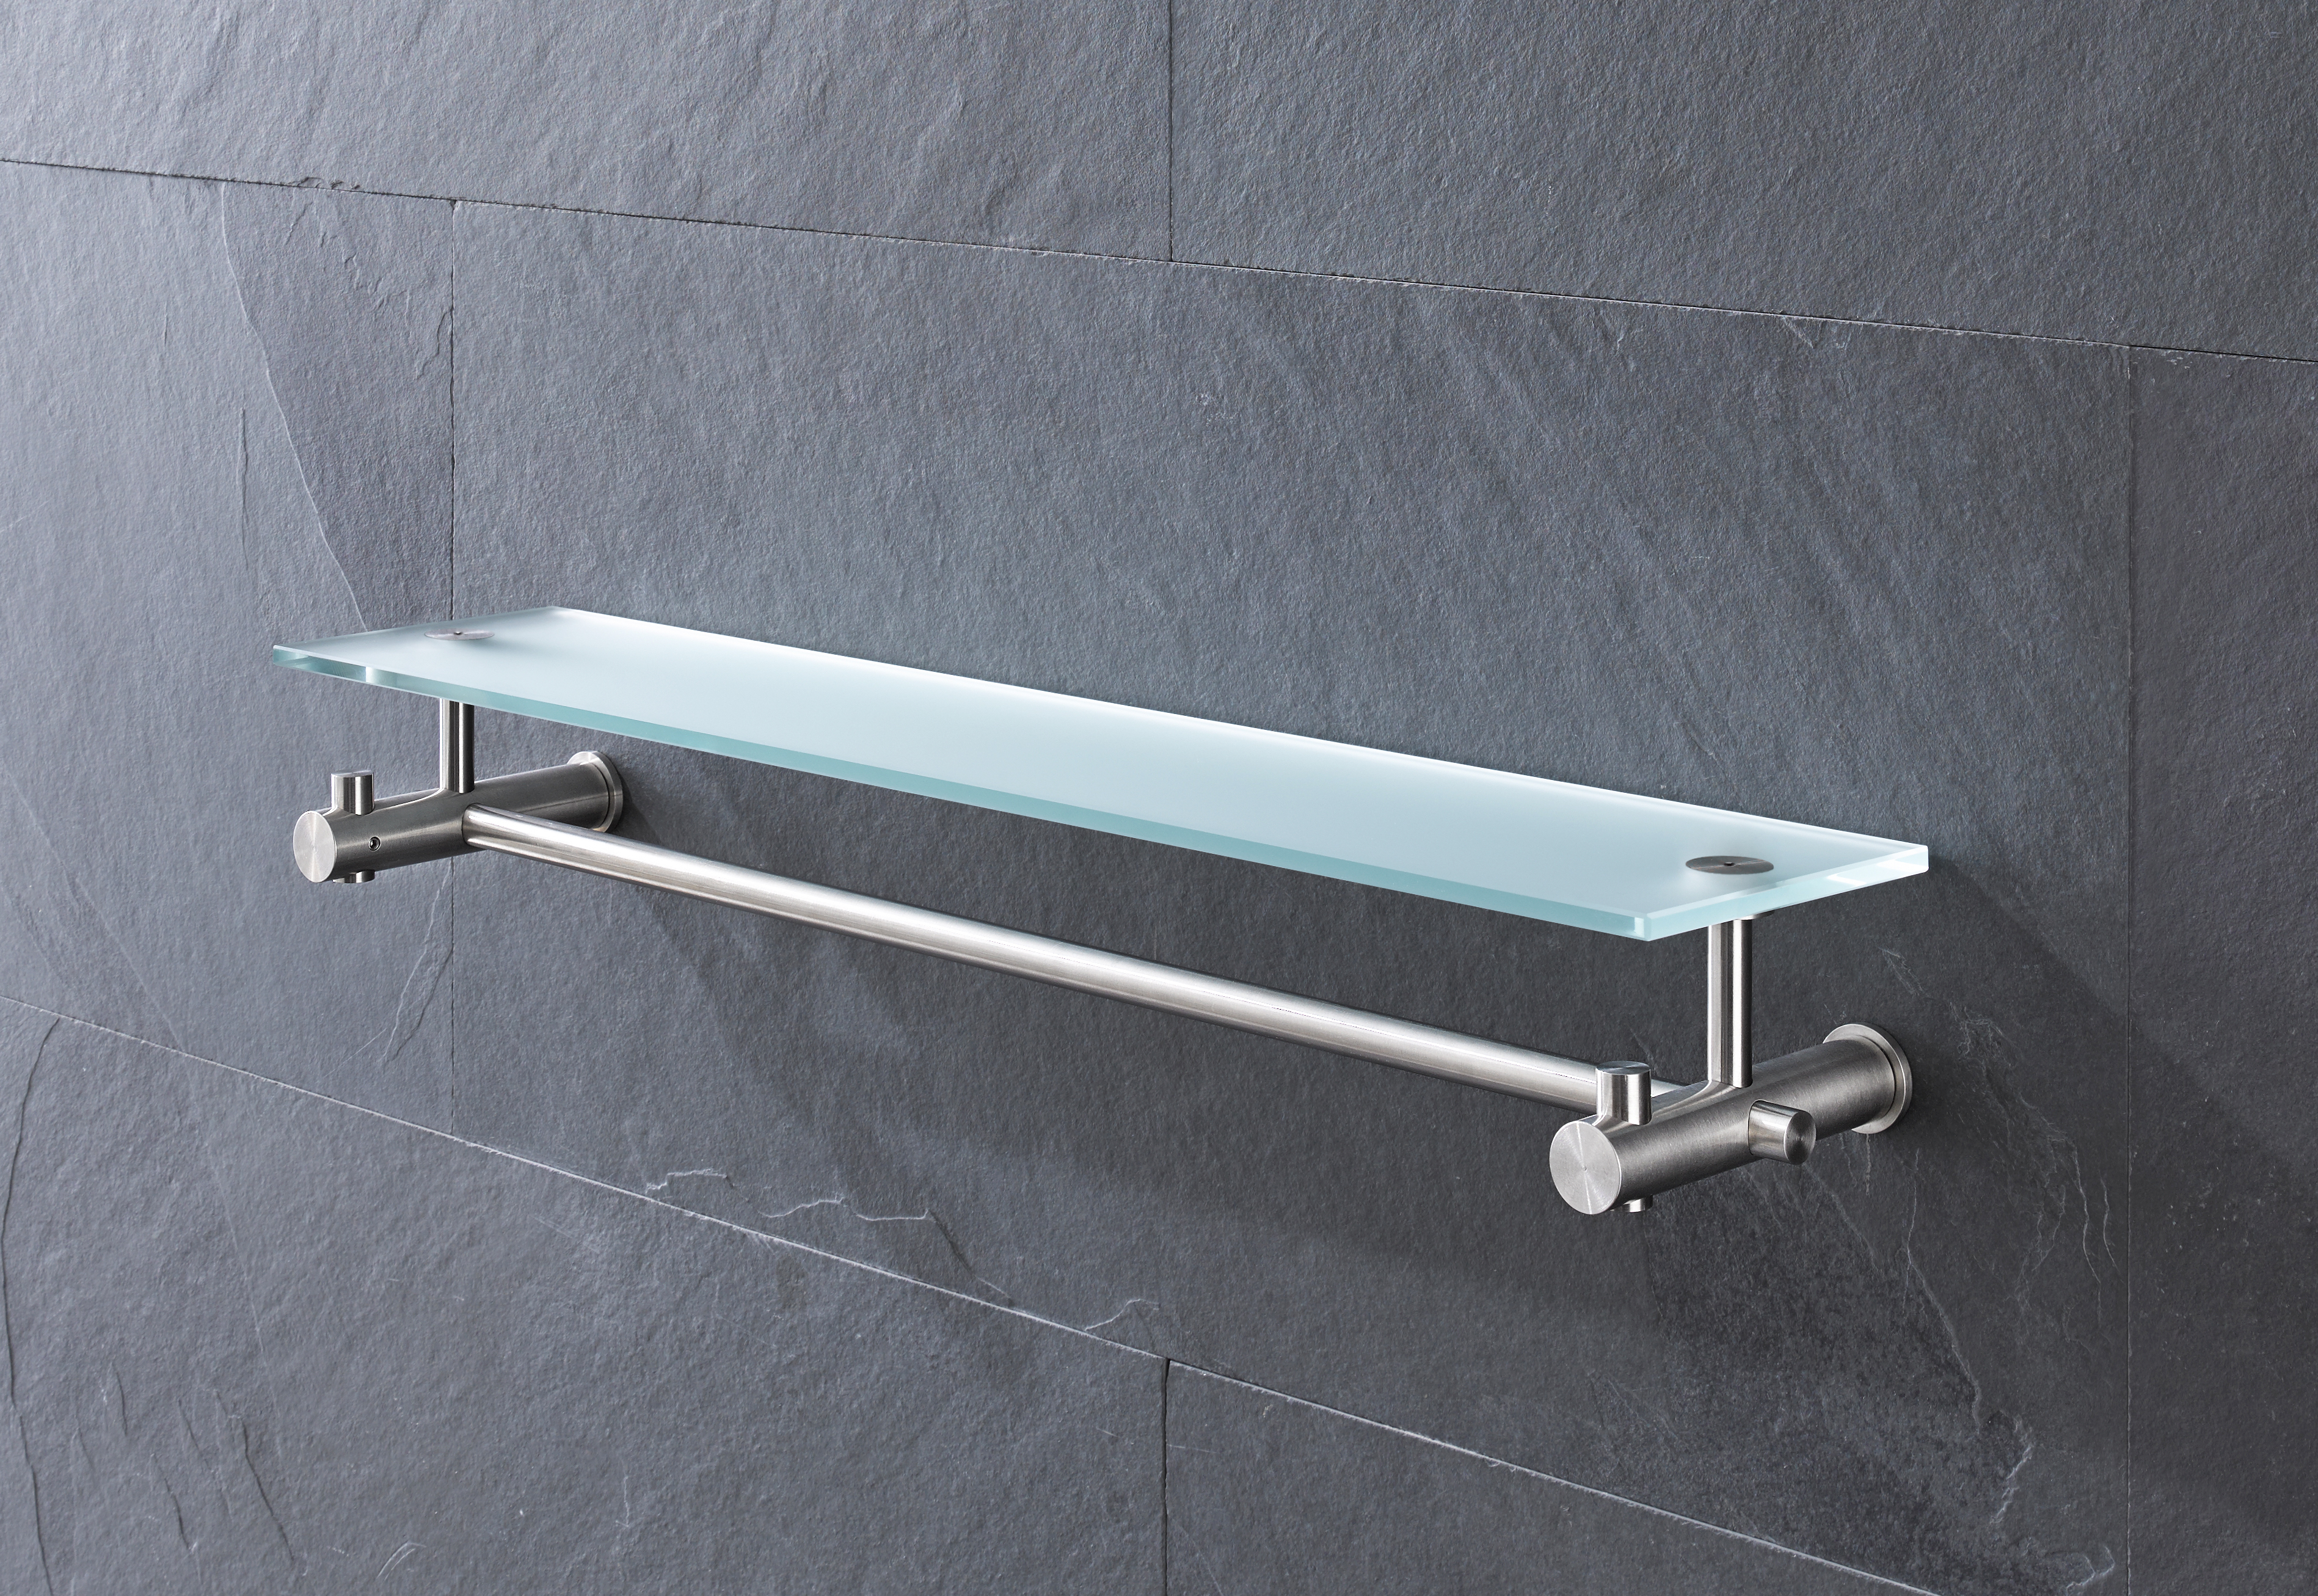 Towel rail with glass shelf G9-500G by PHOS | STYLEPARK